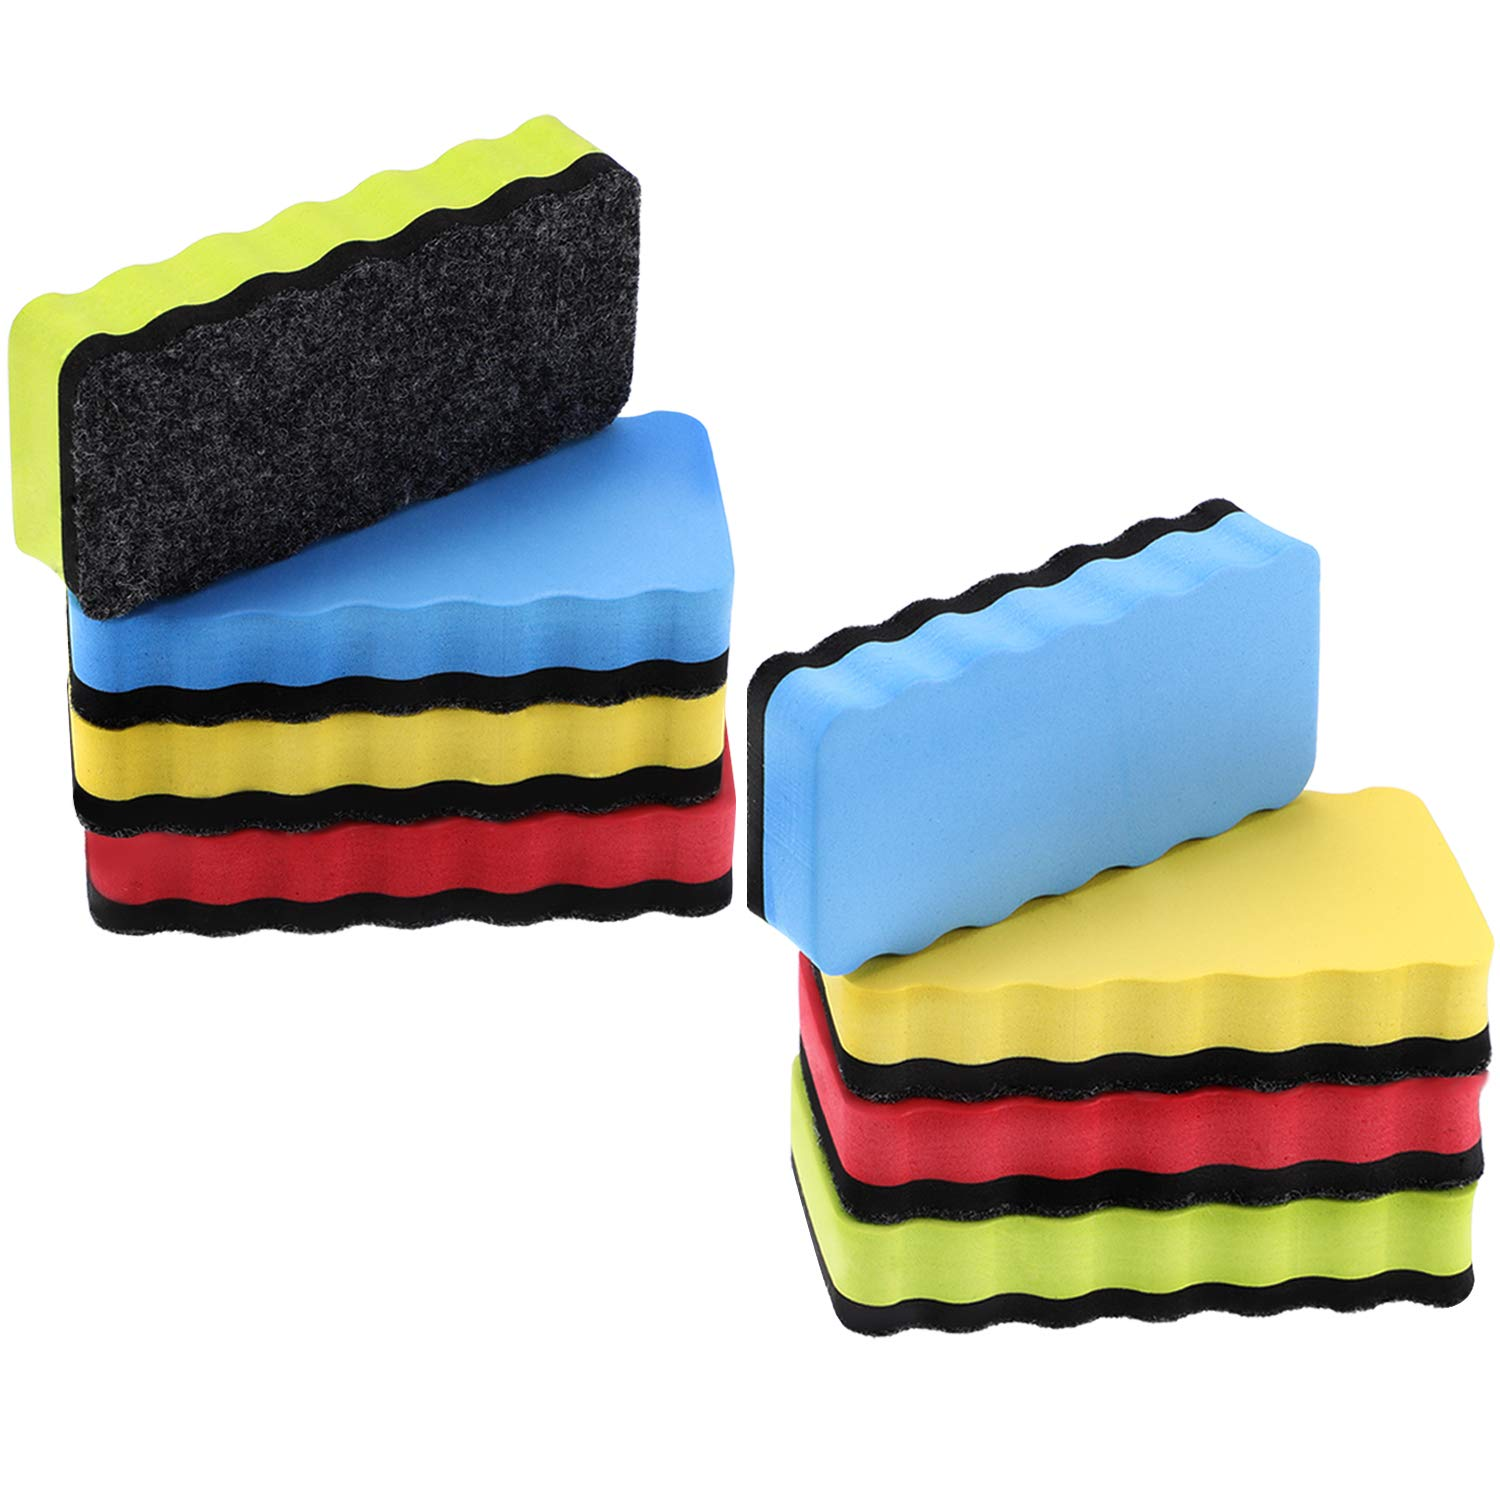 Boao 8 Pieces Magnetic Eraser Whiteboard Eraser Magnetic Dry Erase Eraser for Classroom Office Home Using, 4.1 x 2 x 0.8 inch